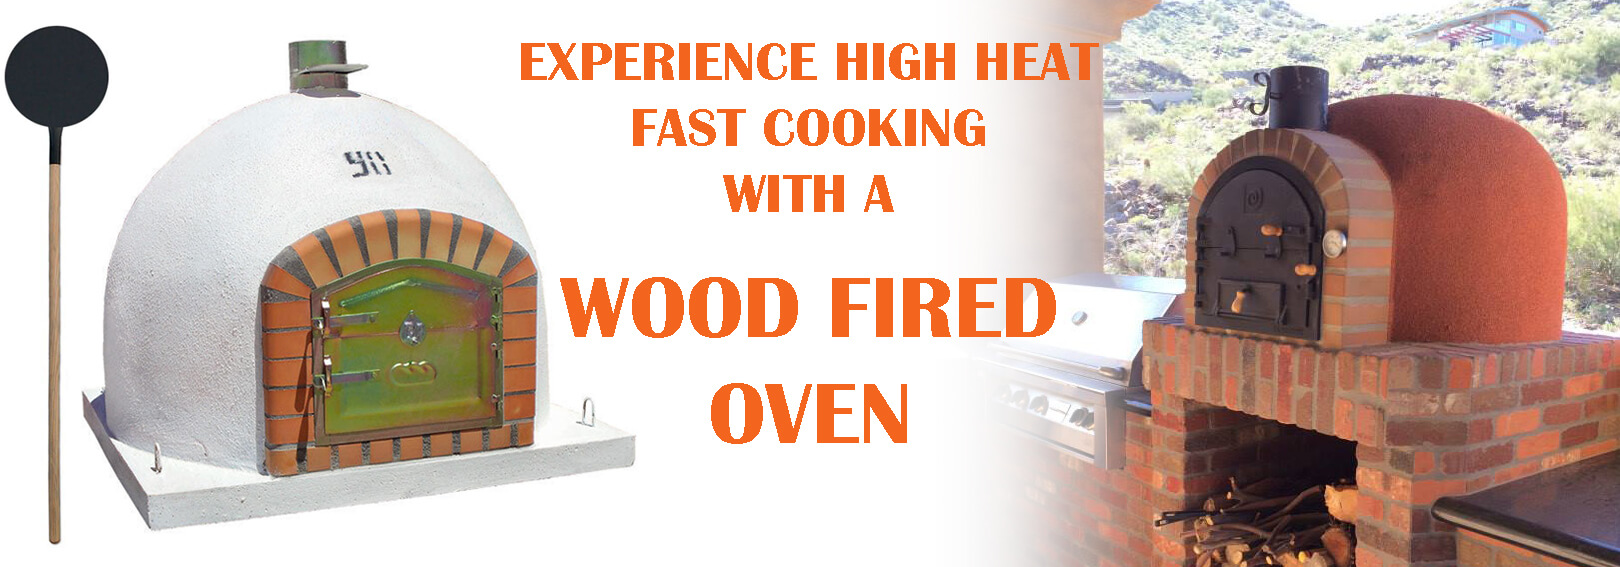 Our Wood Fired Ovens are Hand Crafted and will withstand incredibly high temperatures ideal for outdoor cooking in your garden.